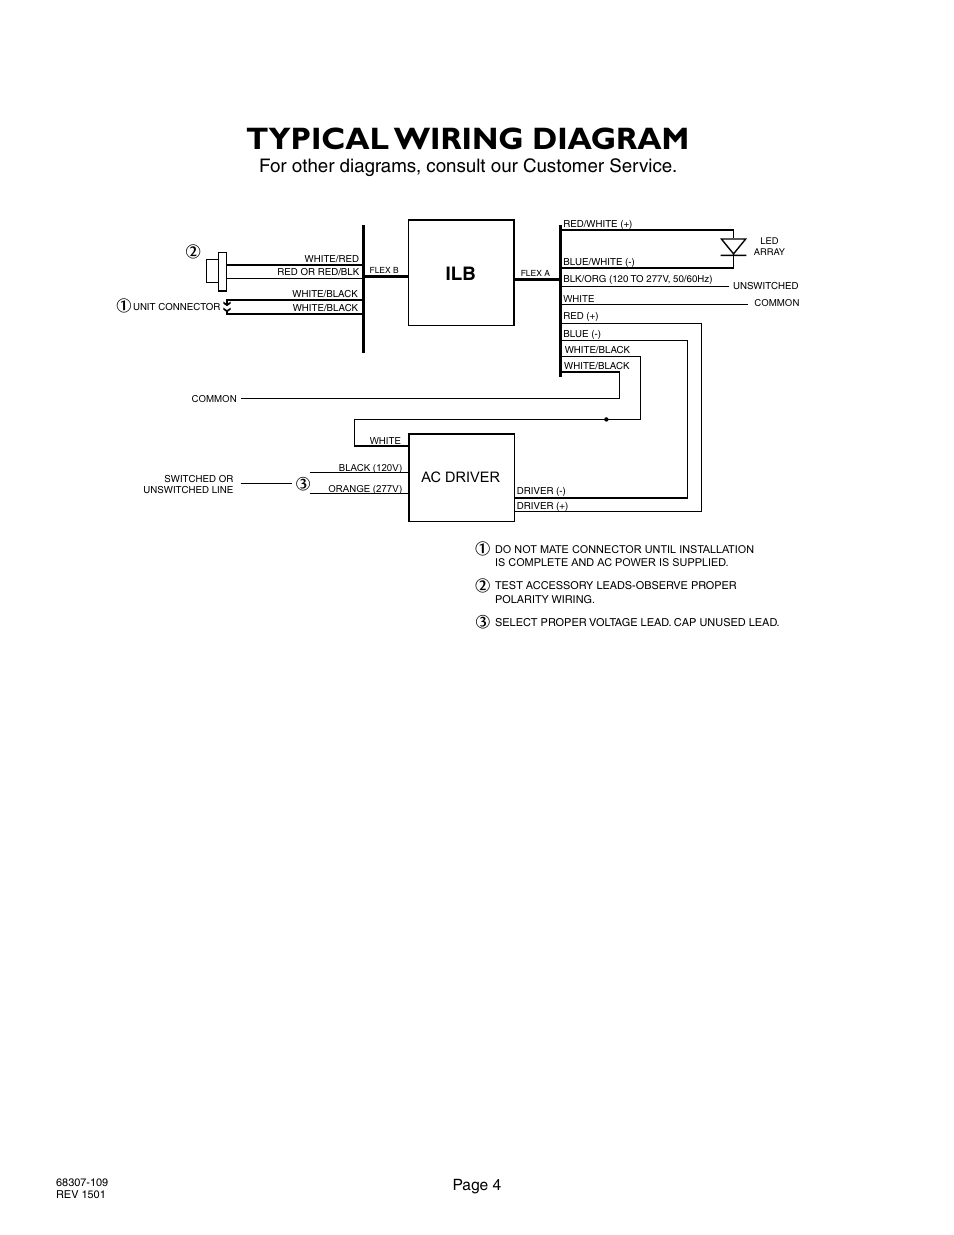 Typical Wiring Diagram For Other Diagrams Consult Our Customer Led Array Service Ilb Iota Cp12 User Manual Page 4 5